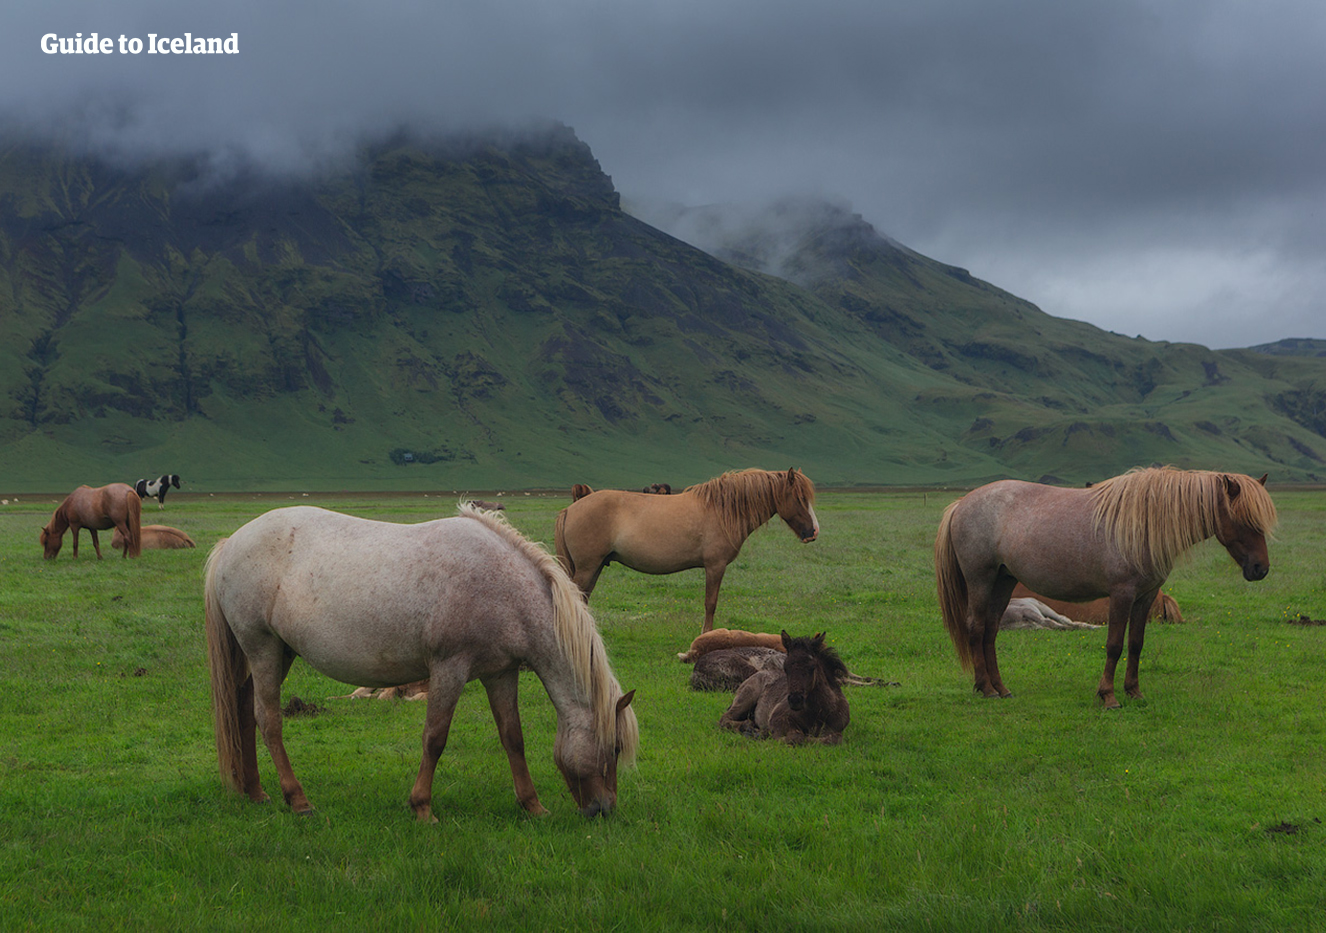 Icelandic horses graze beneath a misty mountain in Iceland.